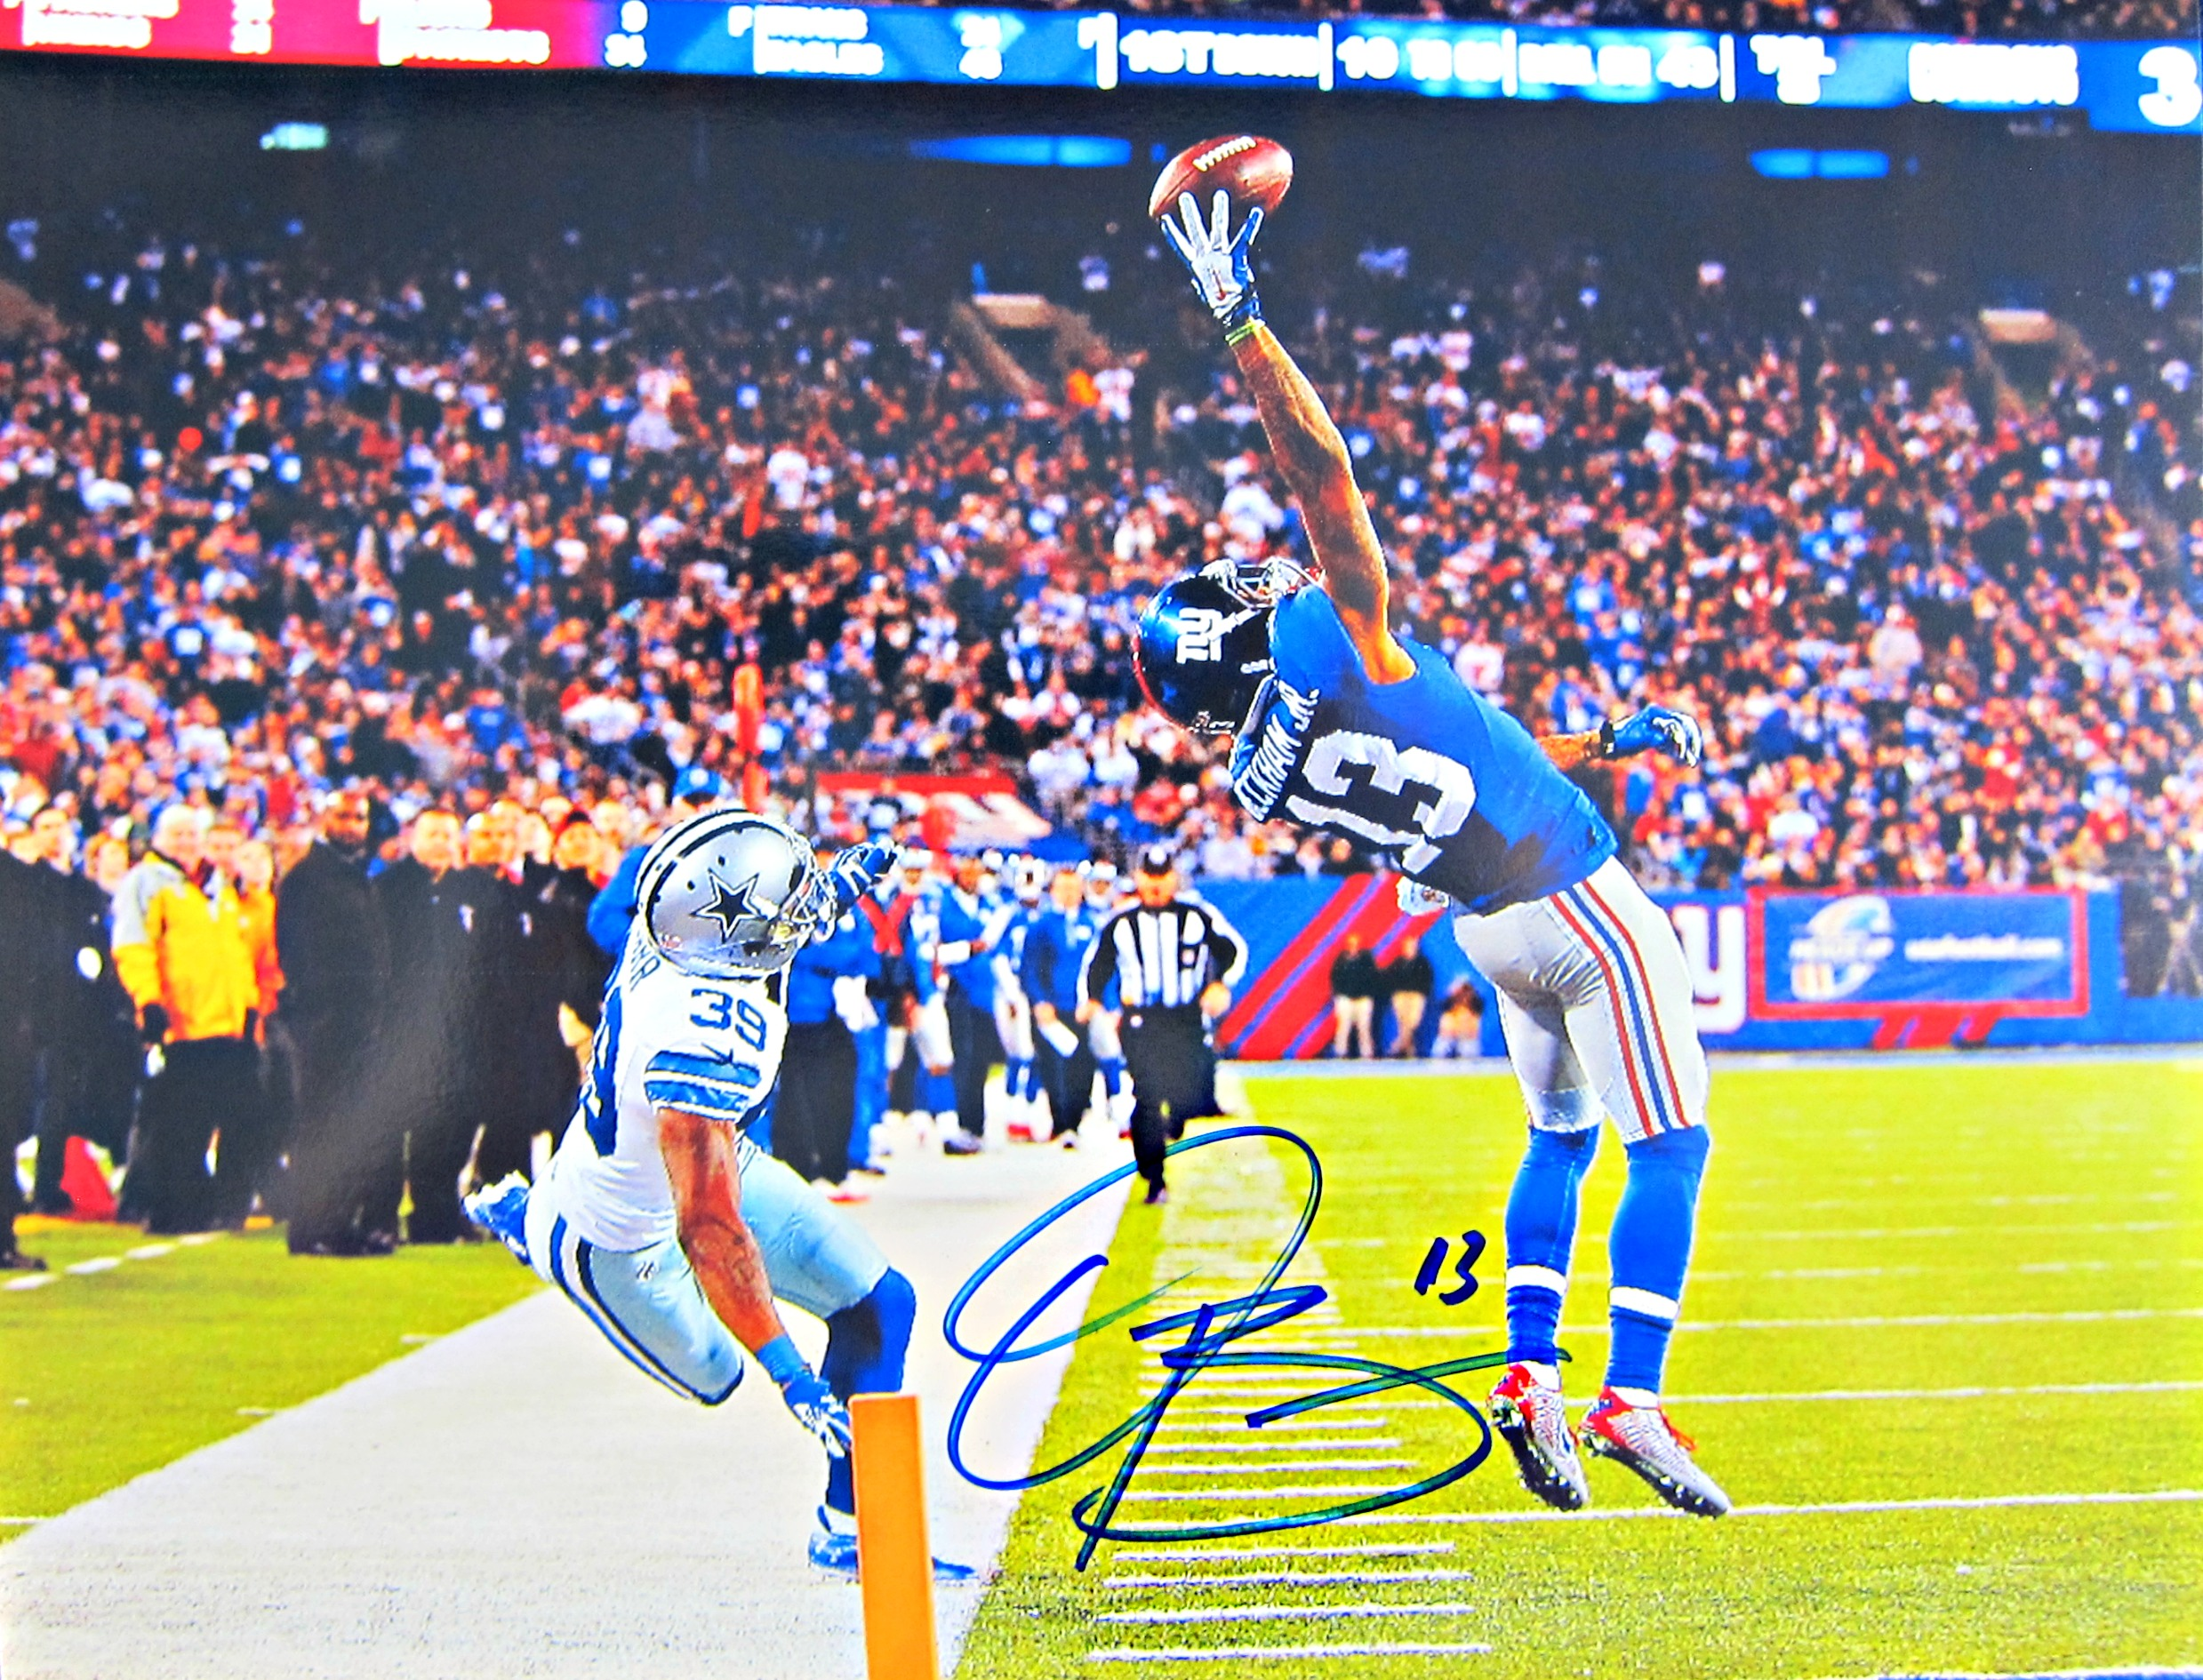 Odell Beckham Jr Autographed Photo Memorabilia Center